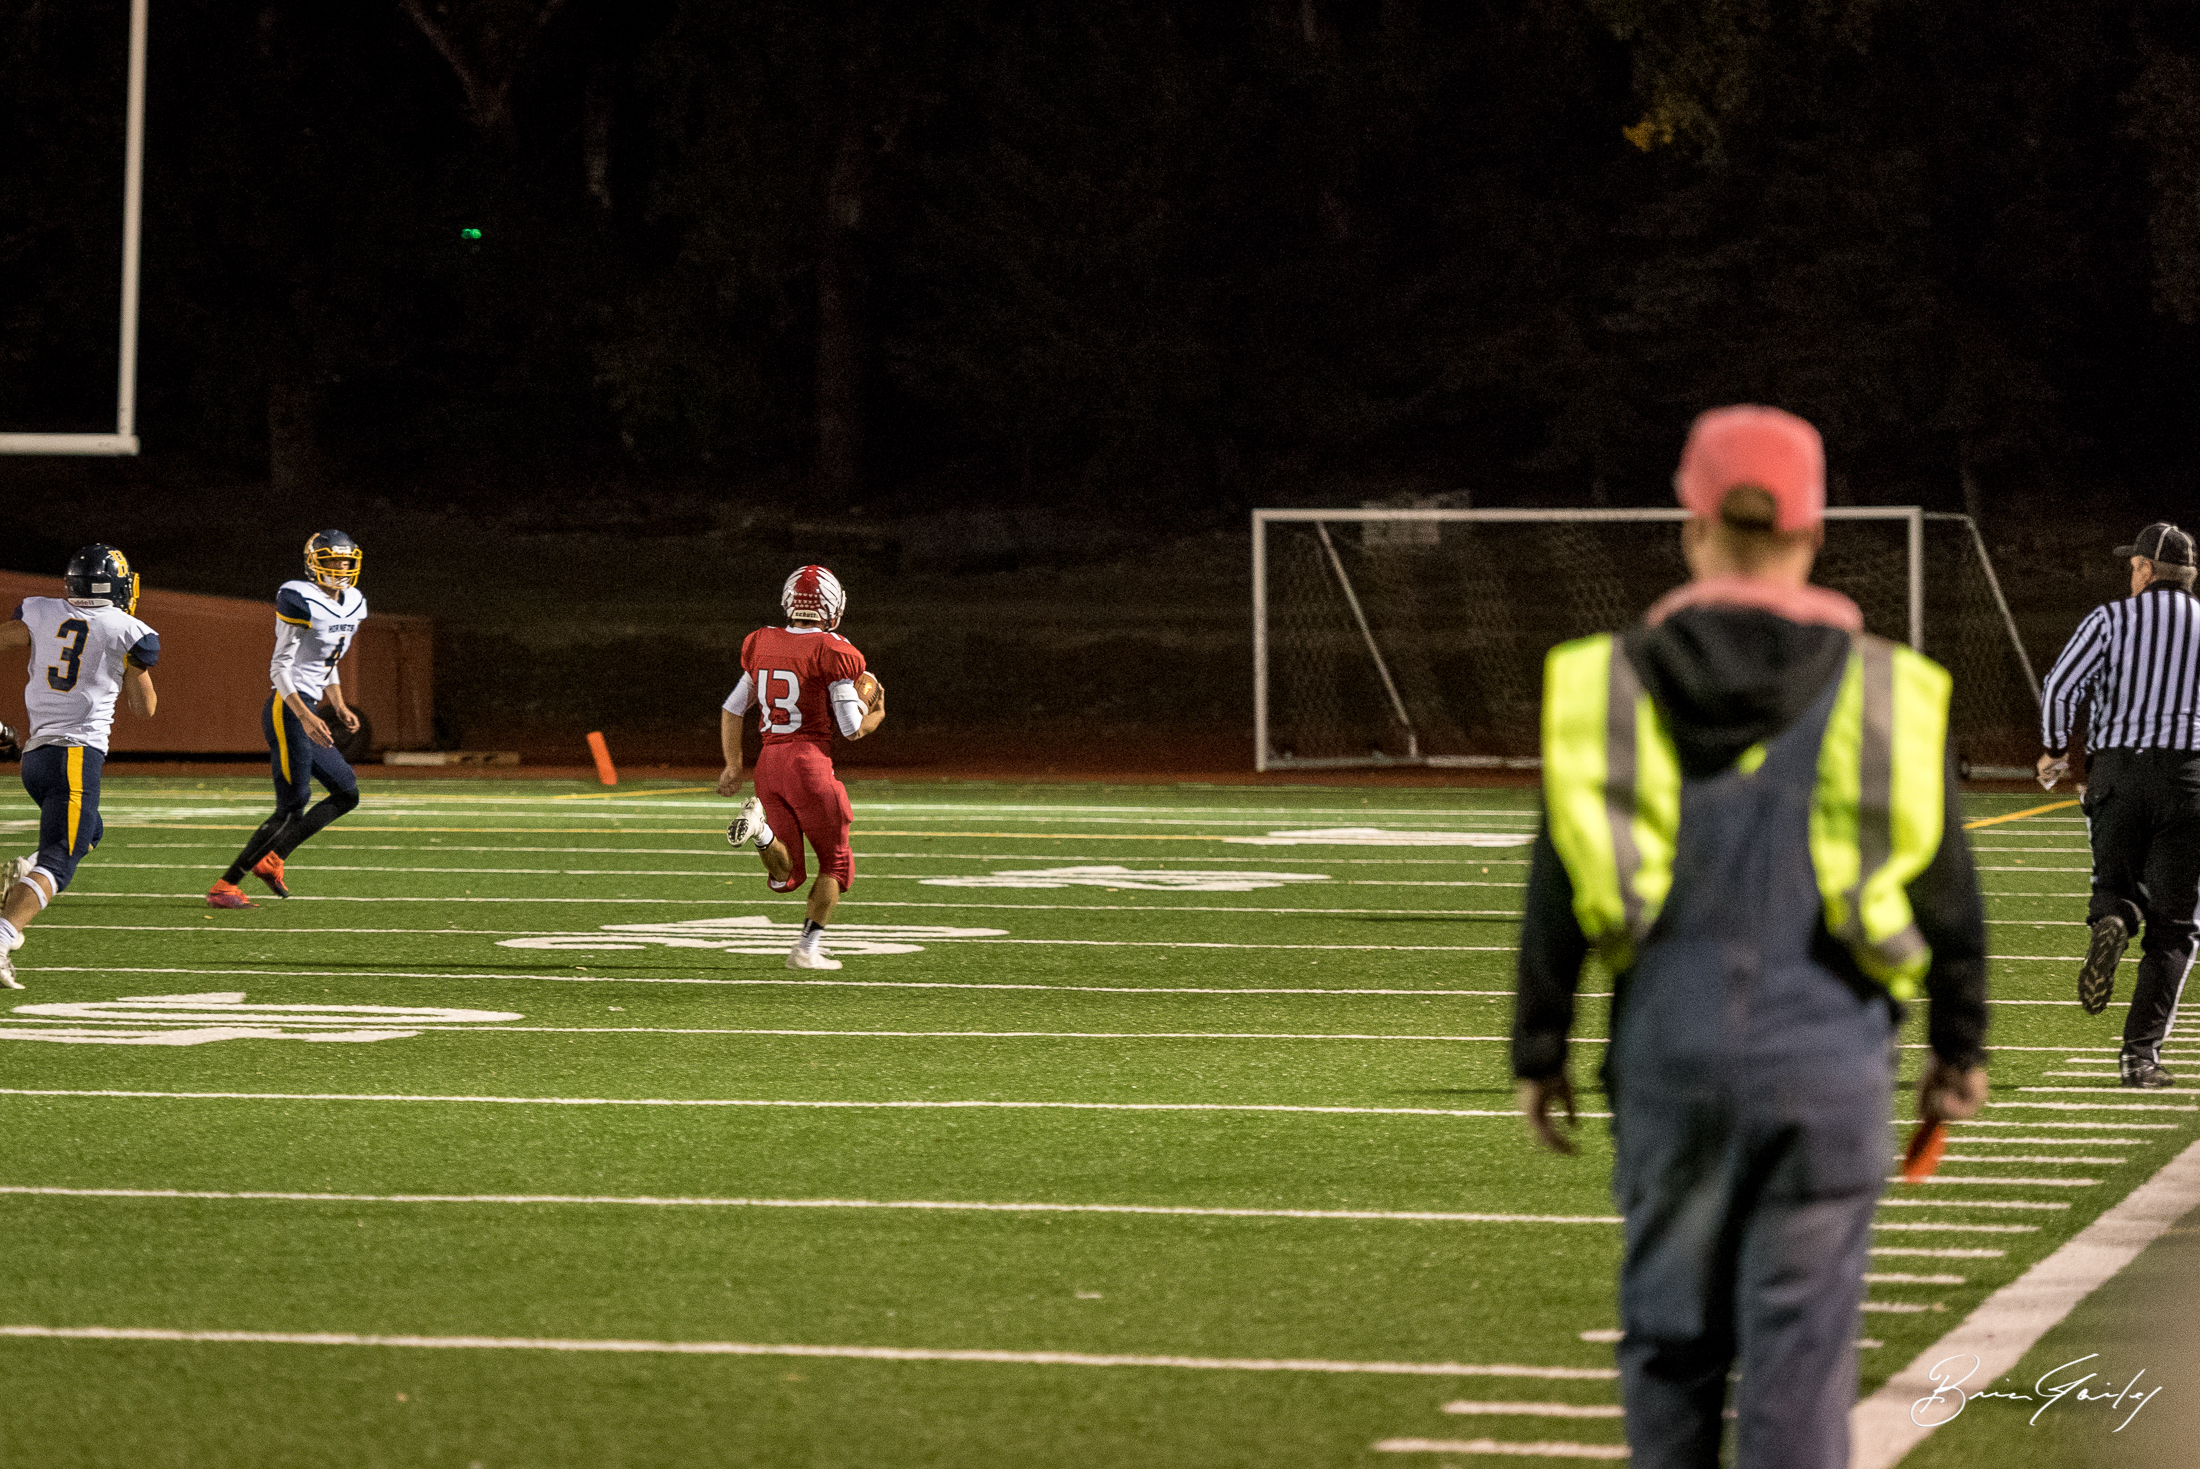 KU's #13 Jaden Quintanella found the perfect lane down the field for this kick off return for a touchdown against Henley.